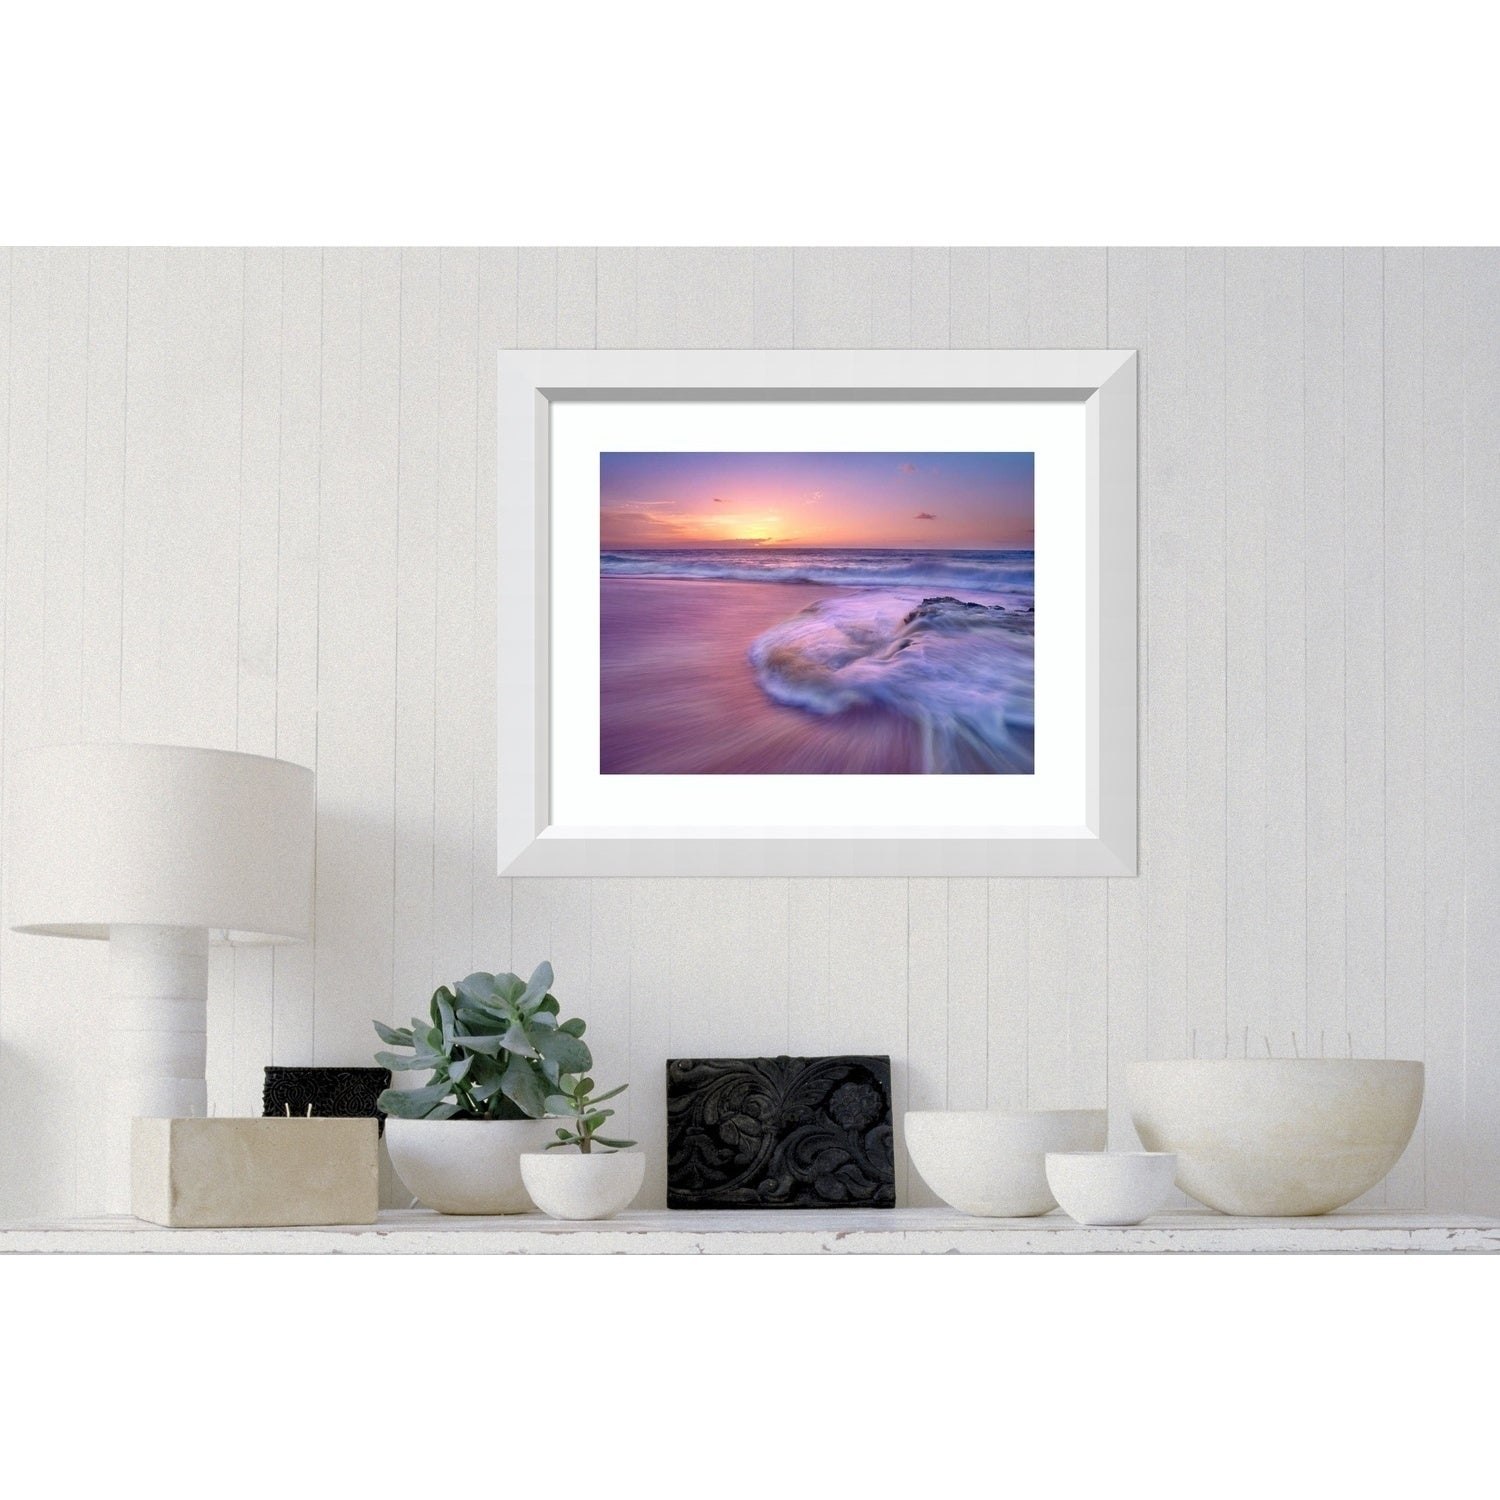 Shop For Framed Art Print Sandy Beach At Sunset Oahu Hawaii By Tim Fitzharris Outer Size 29 X 24 Inch Get Free Delivery On Everything At Overstock Your Online Art Gallery Store Get 5 In Rewards With Club O 24251128